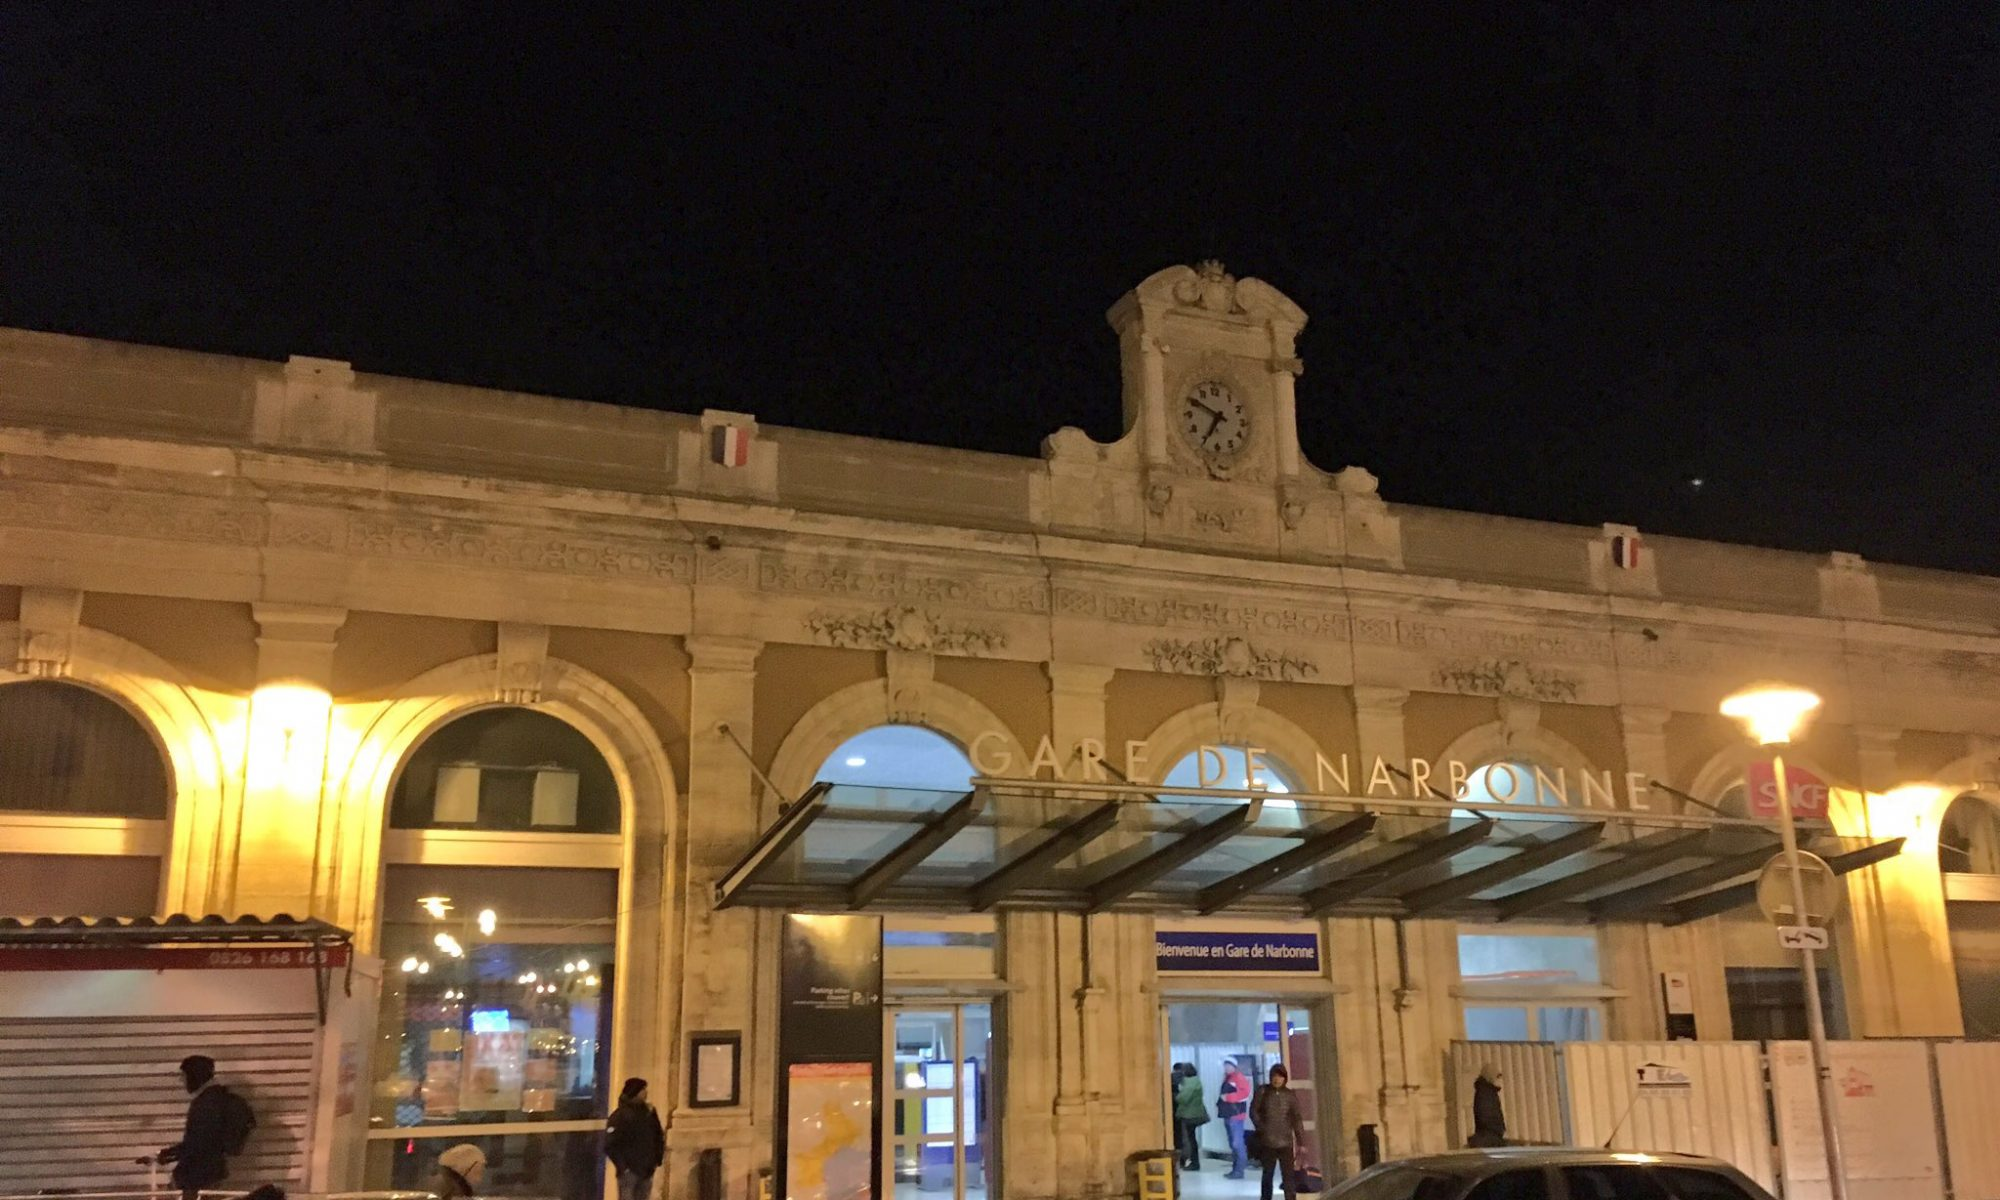 Bahnhof in Narbonne